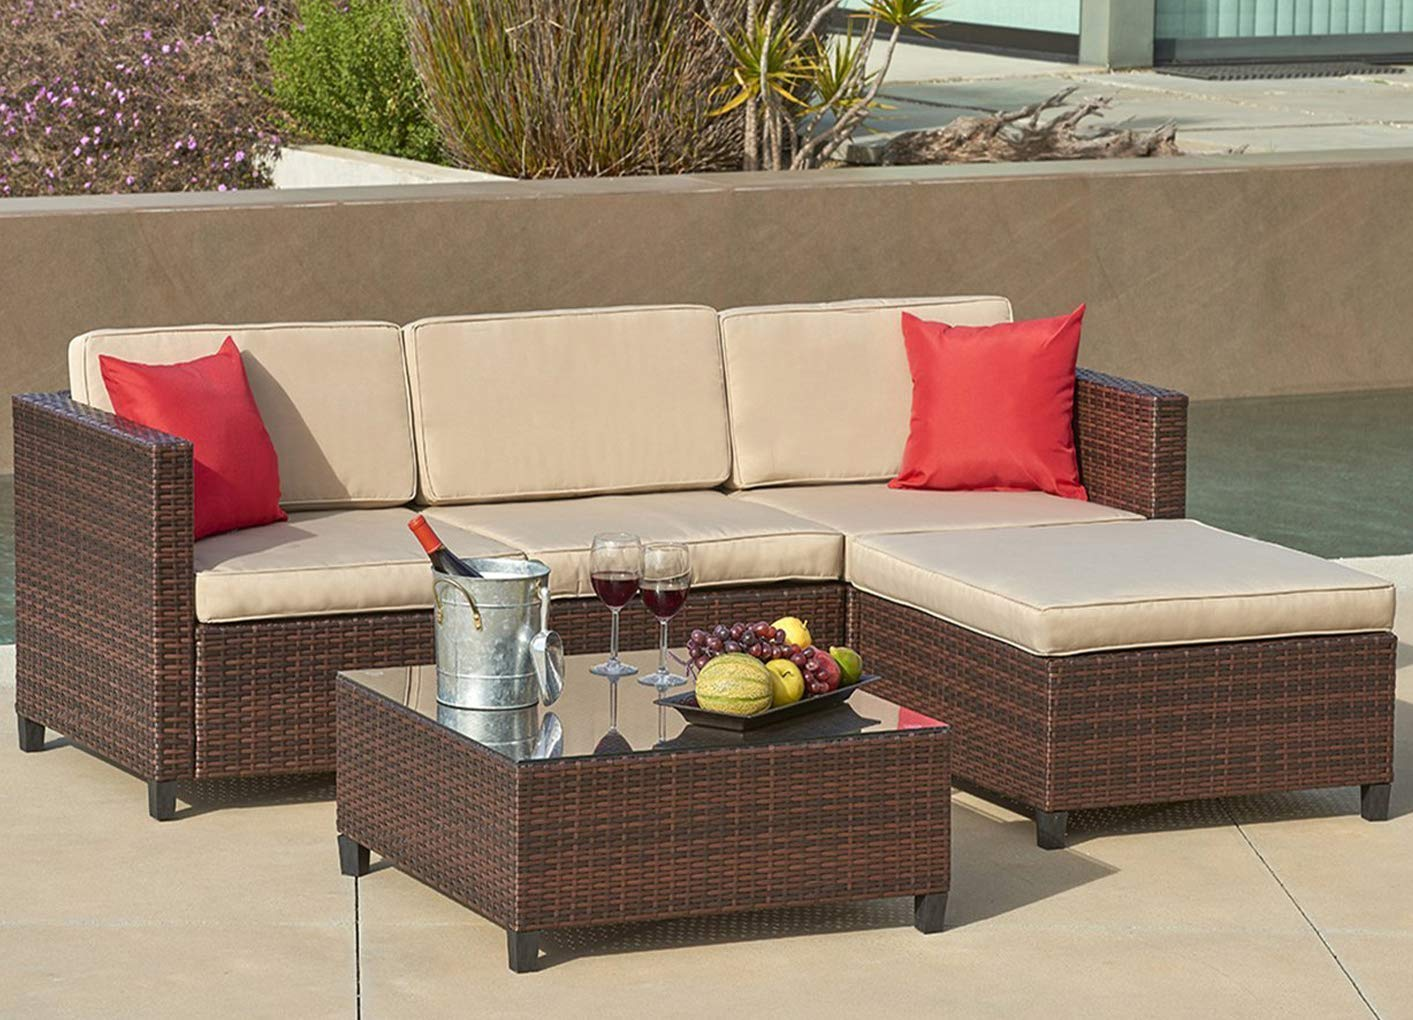 cushions for wicker chairs bedroom chair cream suncrown outdoor sectional sofa 5 piece set all weather brown checkered